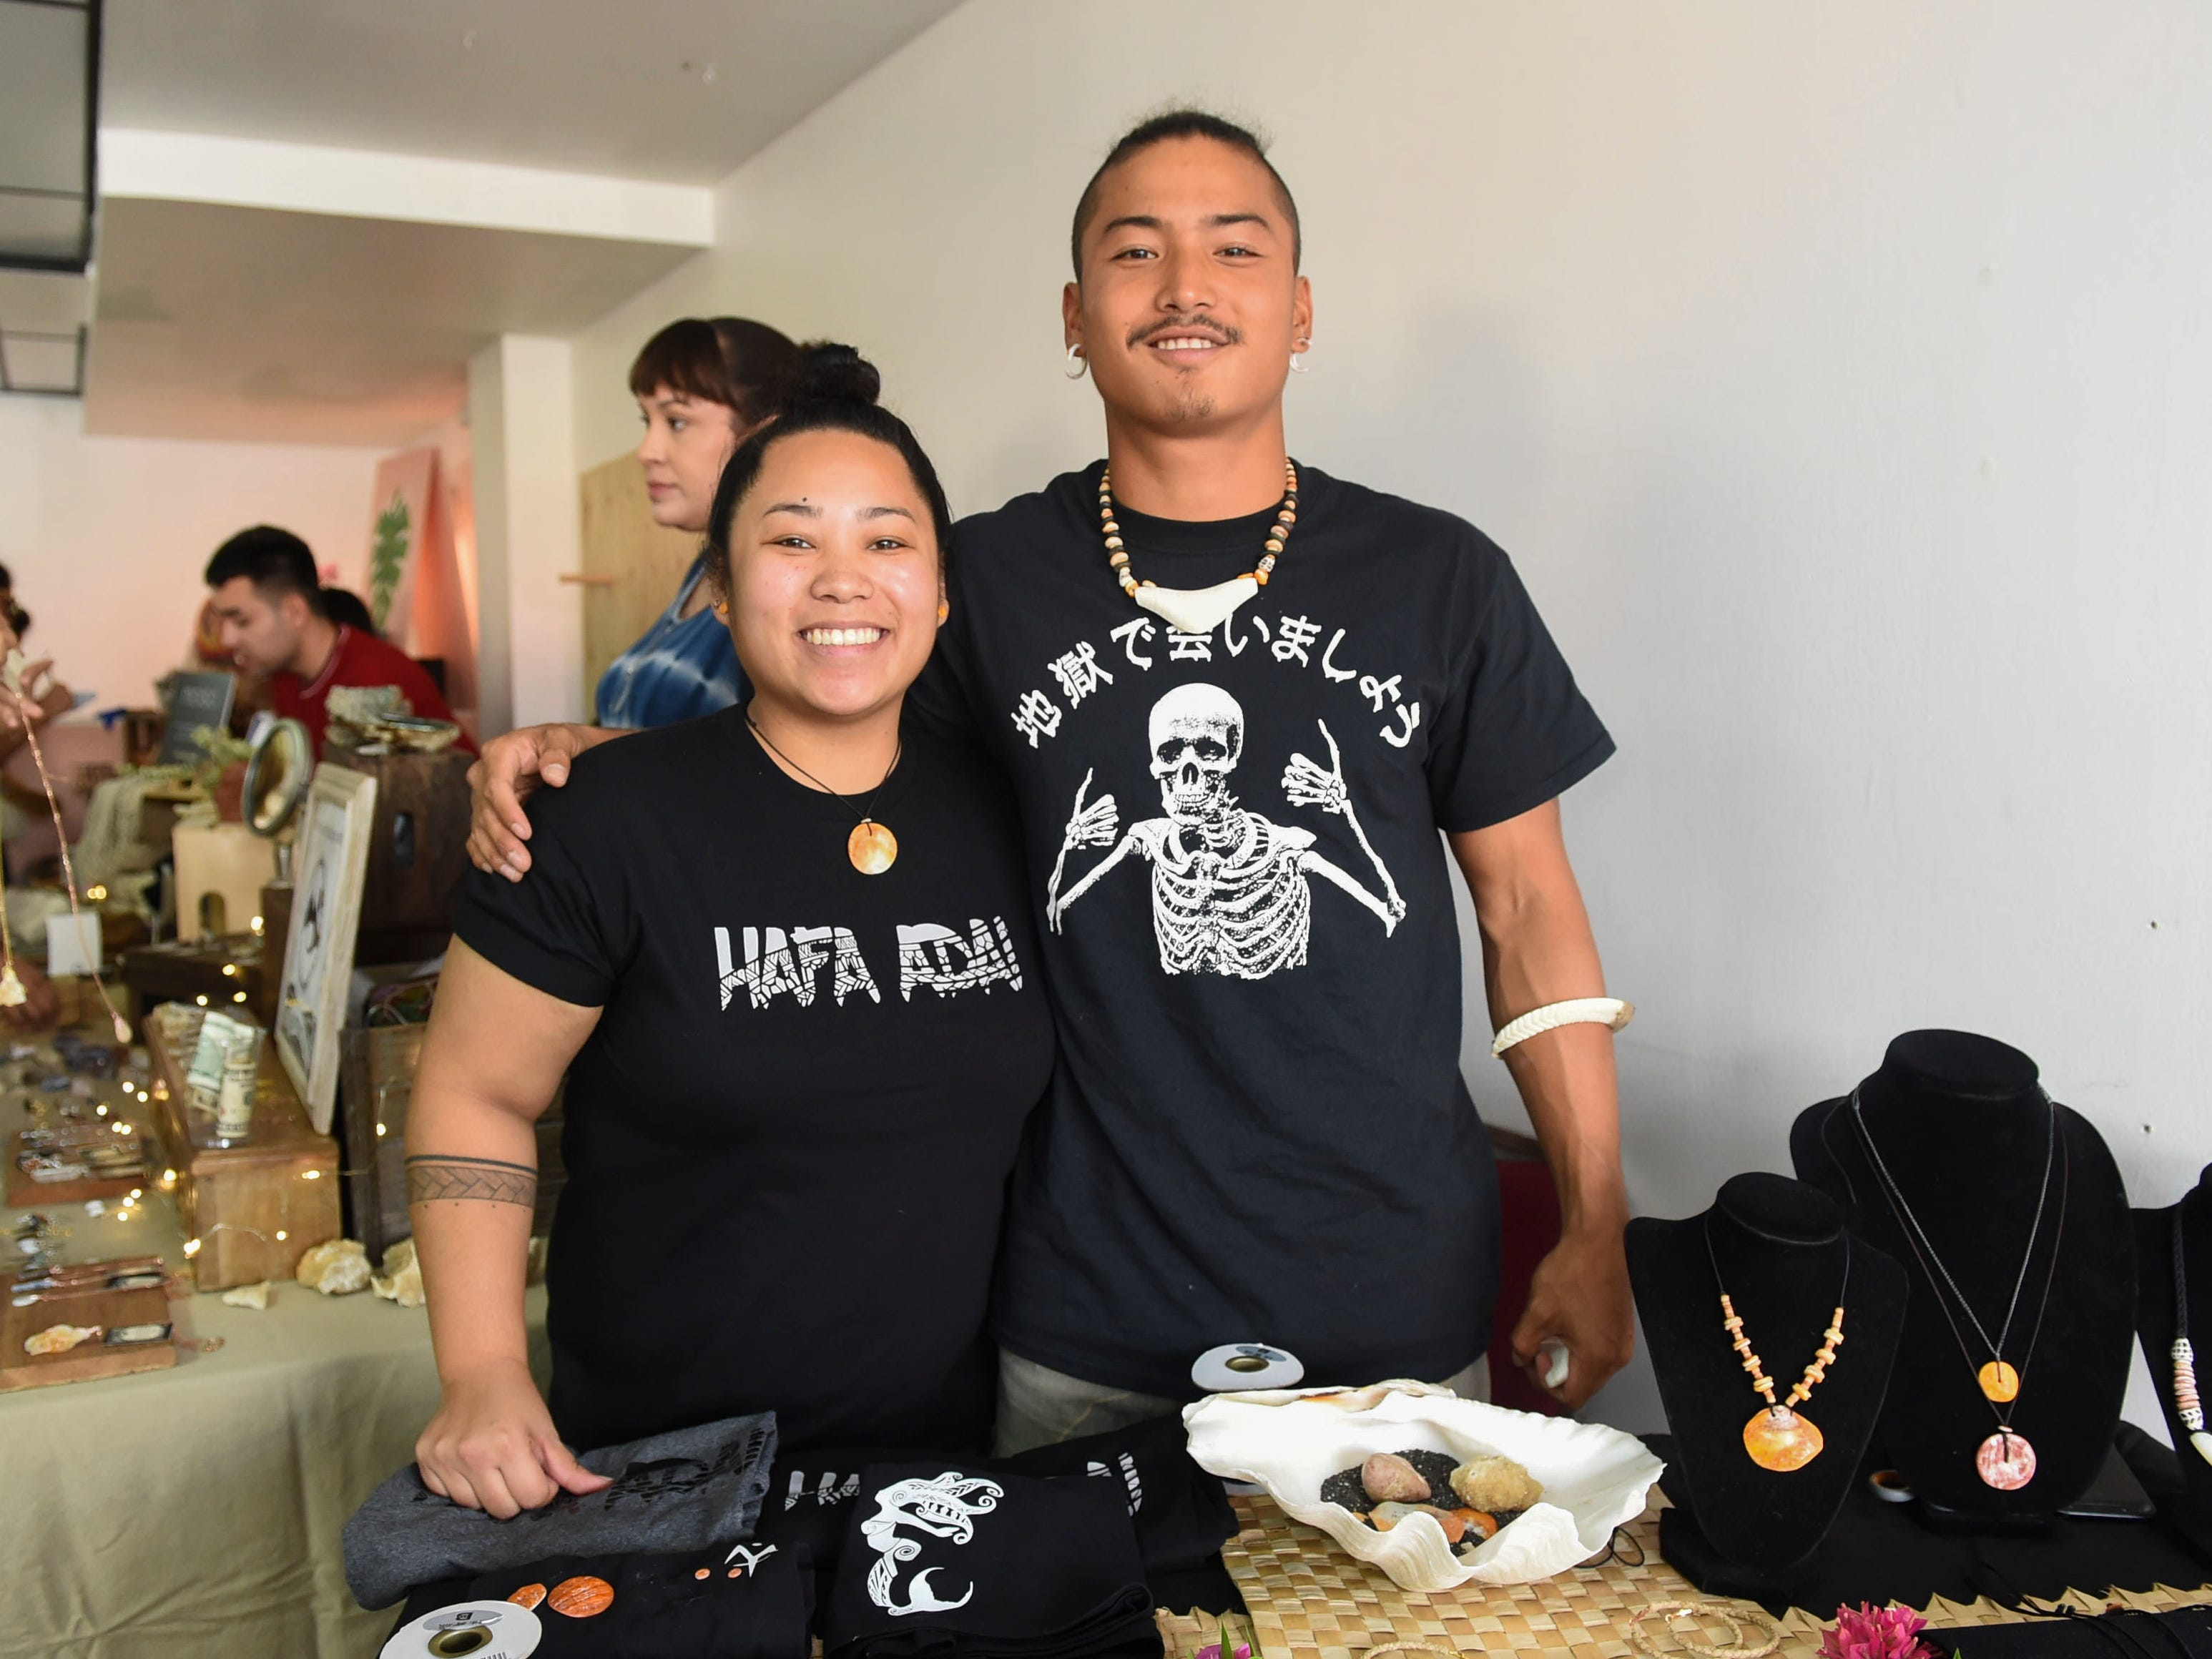 Makmåta Tribe co-founders Kai San Nicolas, left, and Hila'an San Nicolas during the Maga'håga Rising launch party at Sundays Guam in Tumon, Jan. 13, 2018.